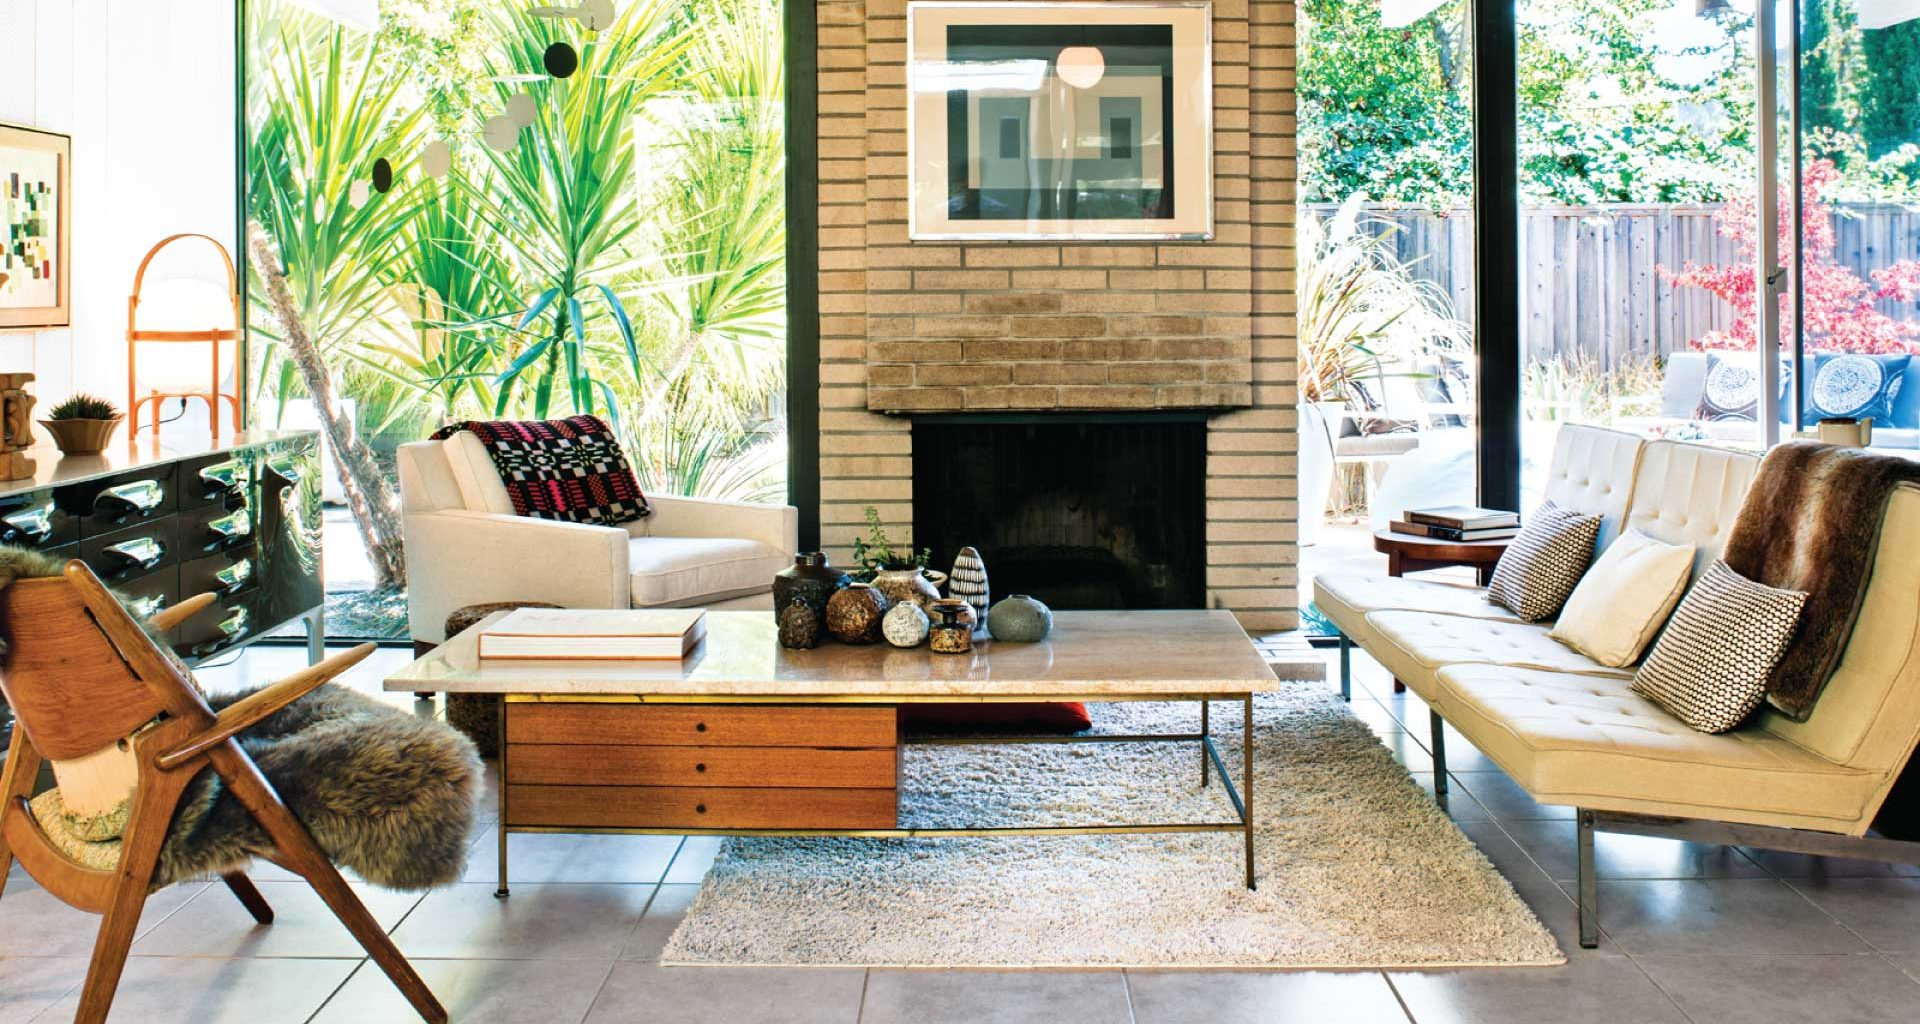 MidCentury Modern Design  Decorating Guide  Lazy Loft by FROY